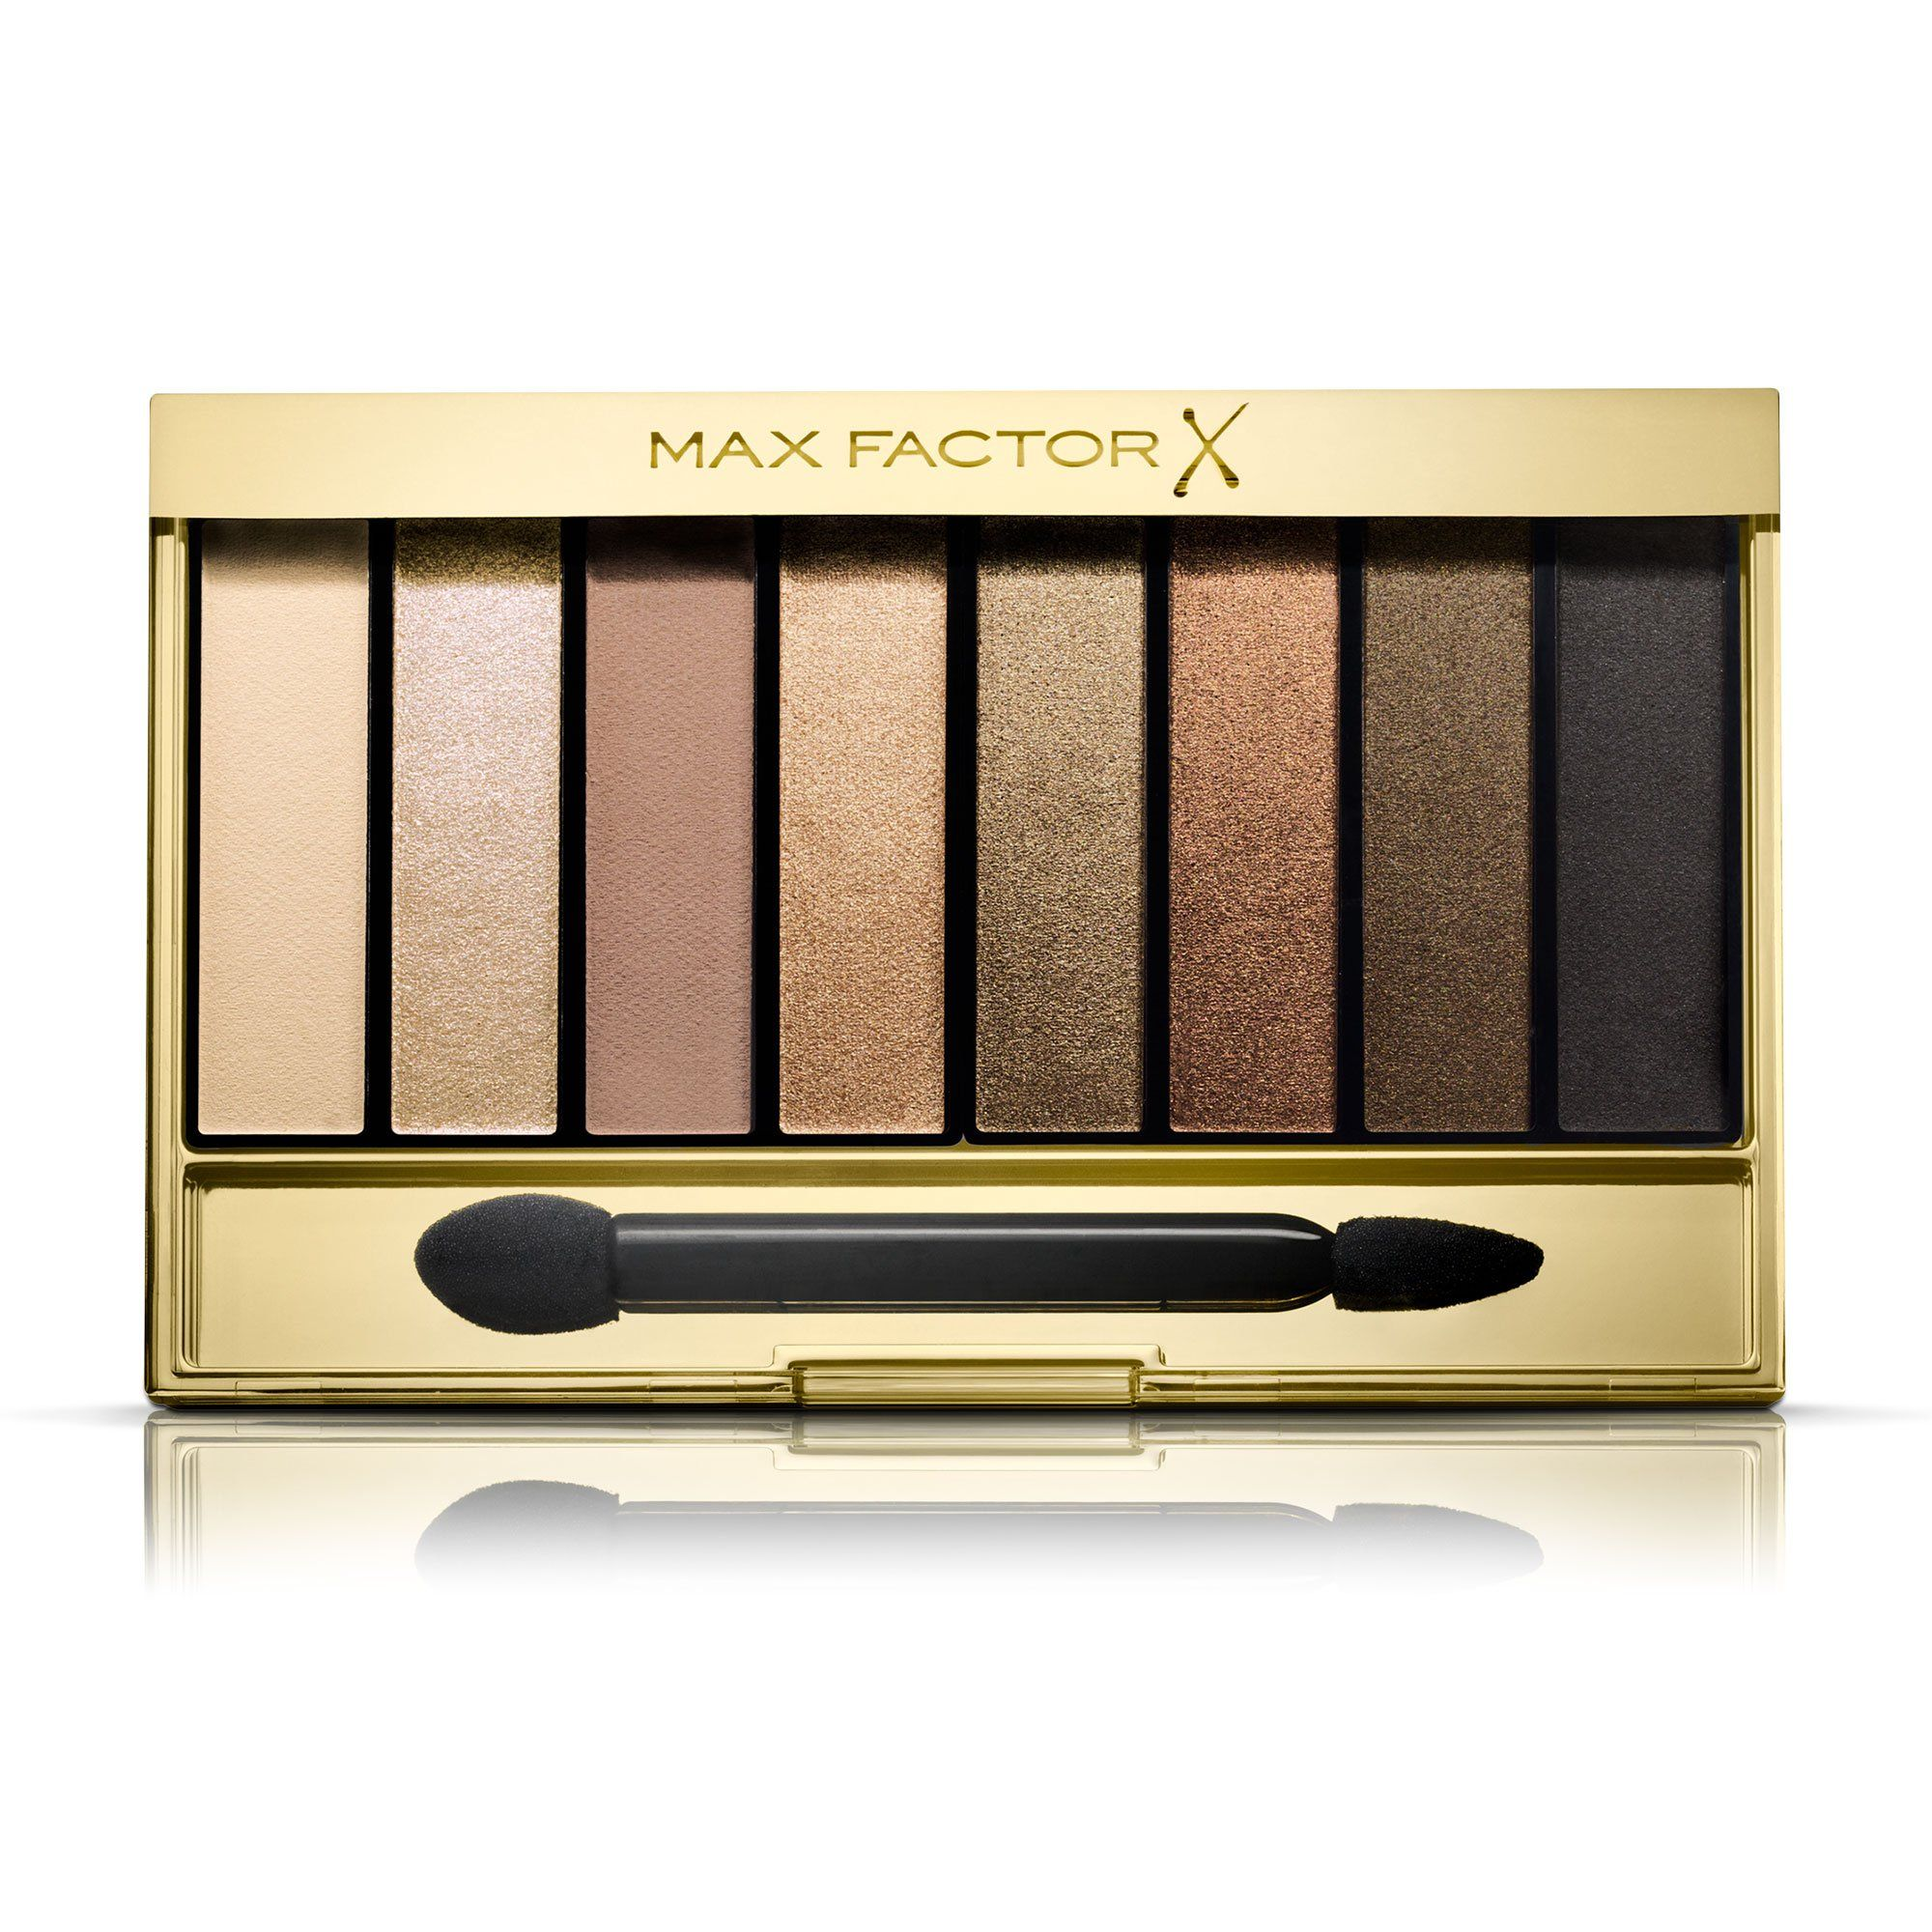 Max Factor Masterpiece Nude Palette 02 Golden Nudes The Baked